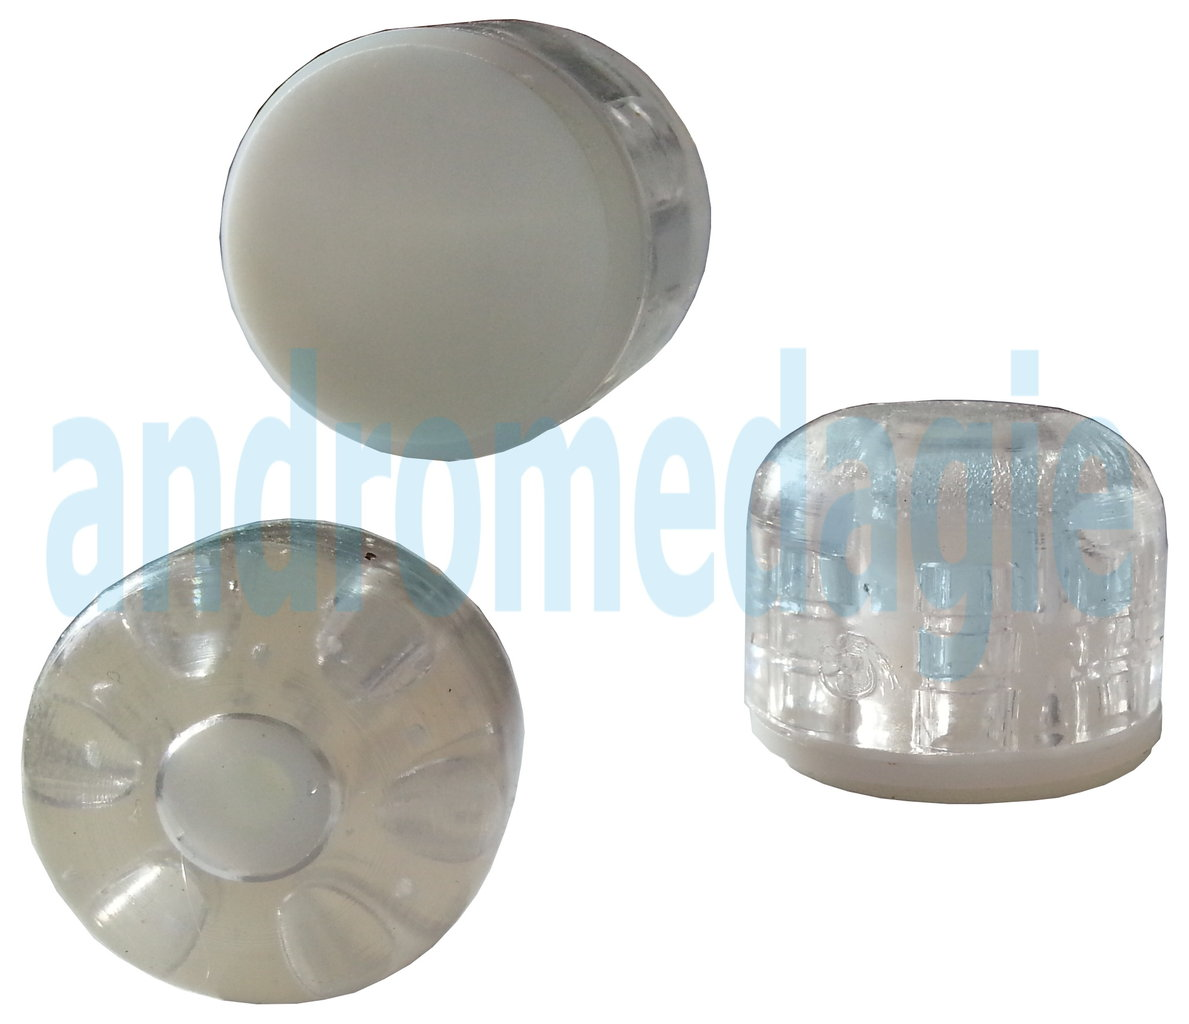 CONFECTION 2 PIECES DOORSTOP ROUND TRANSPARENT STICKER